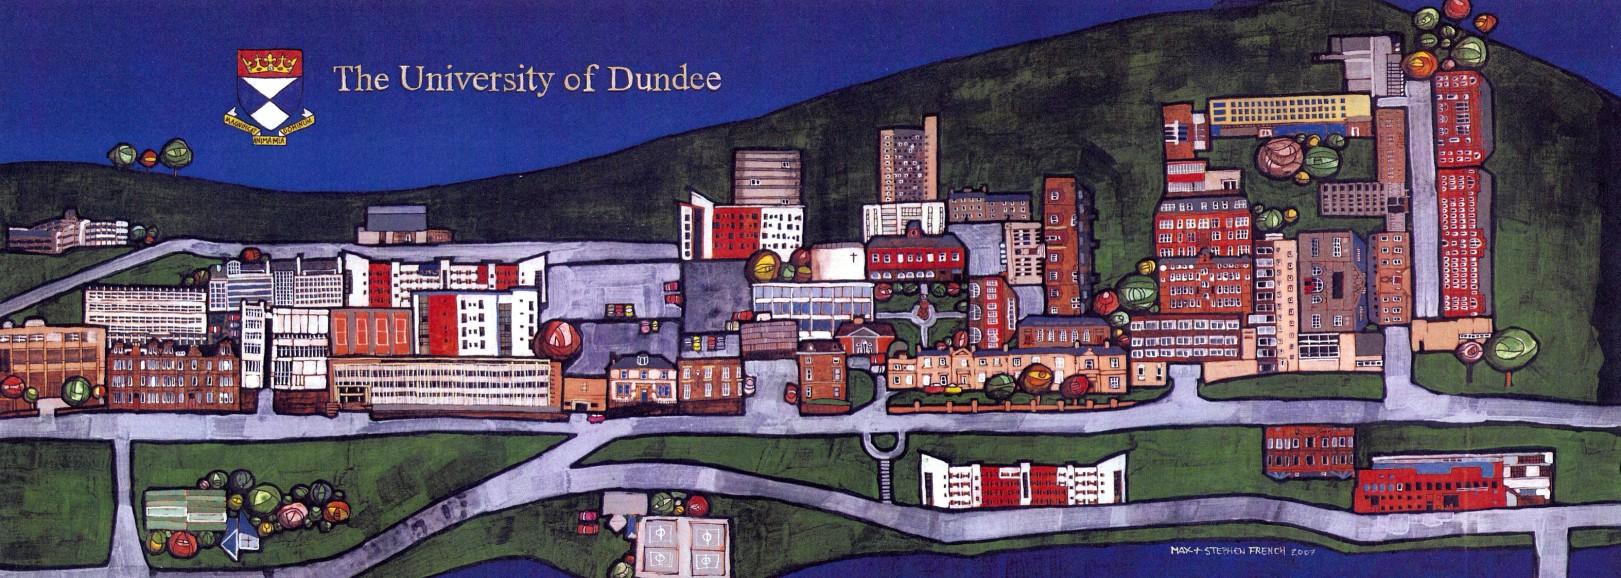 Stephen French_University of Dundee_15.75x5.75_40